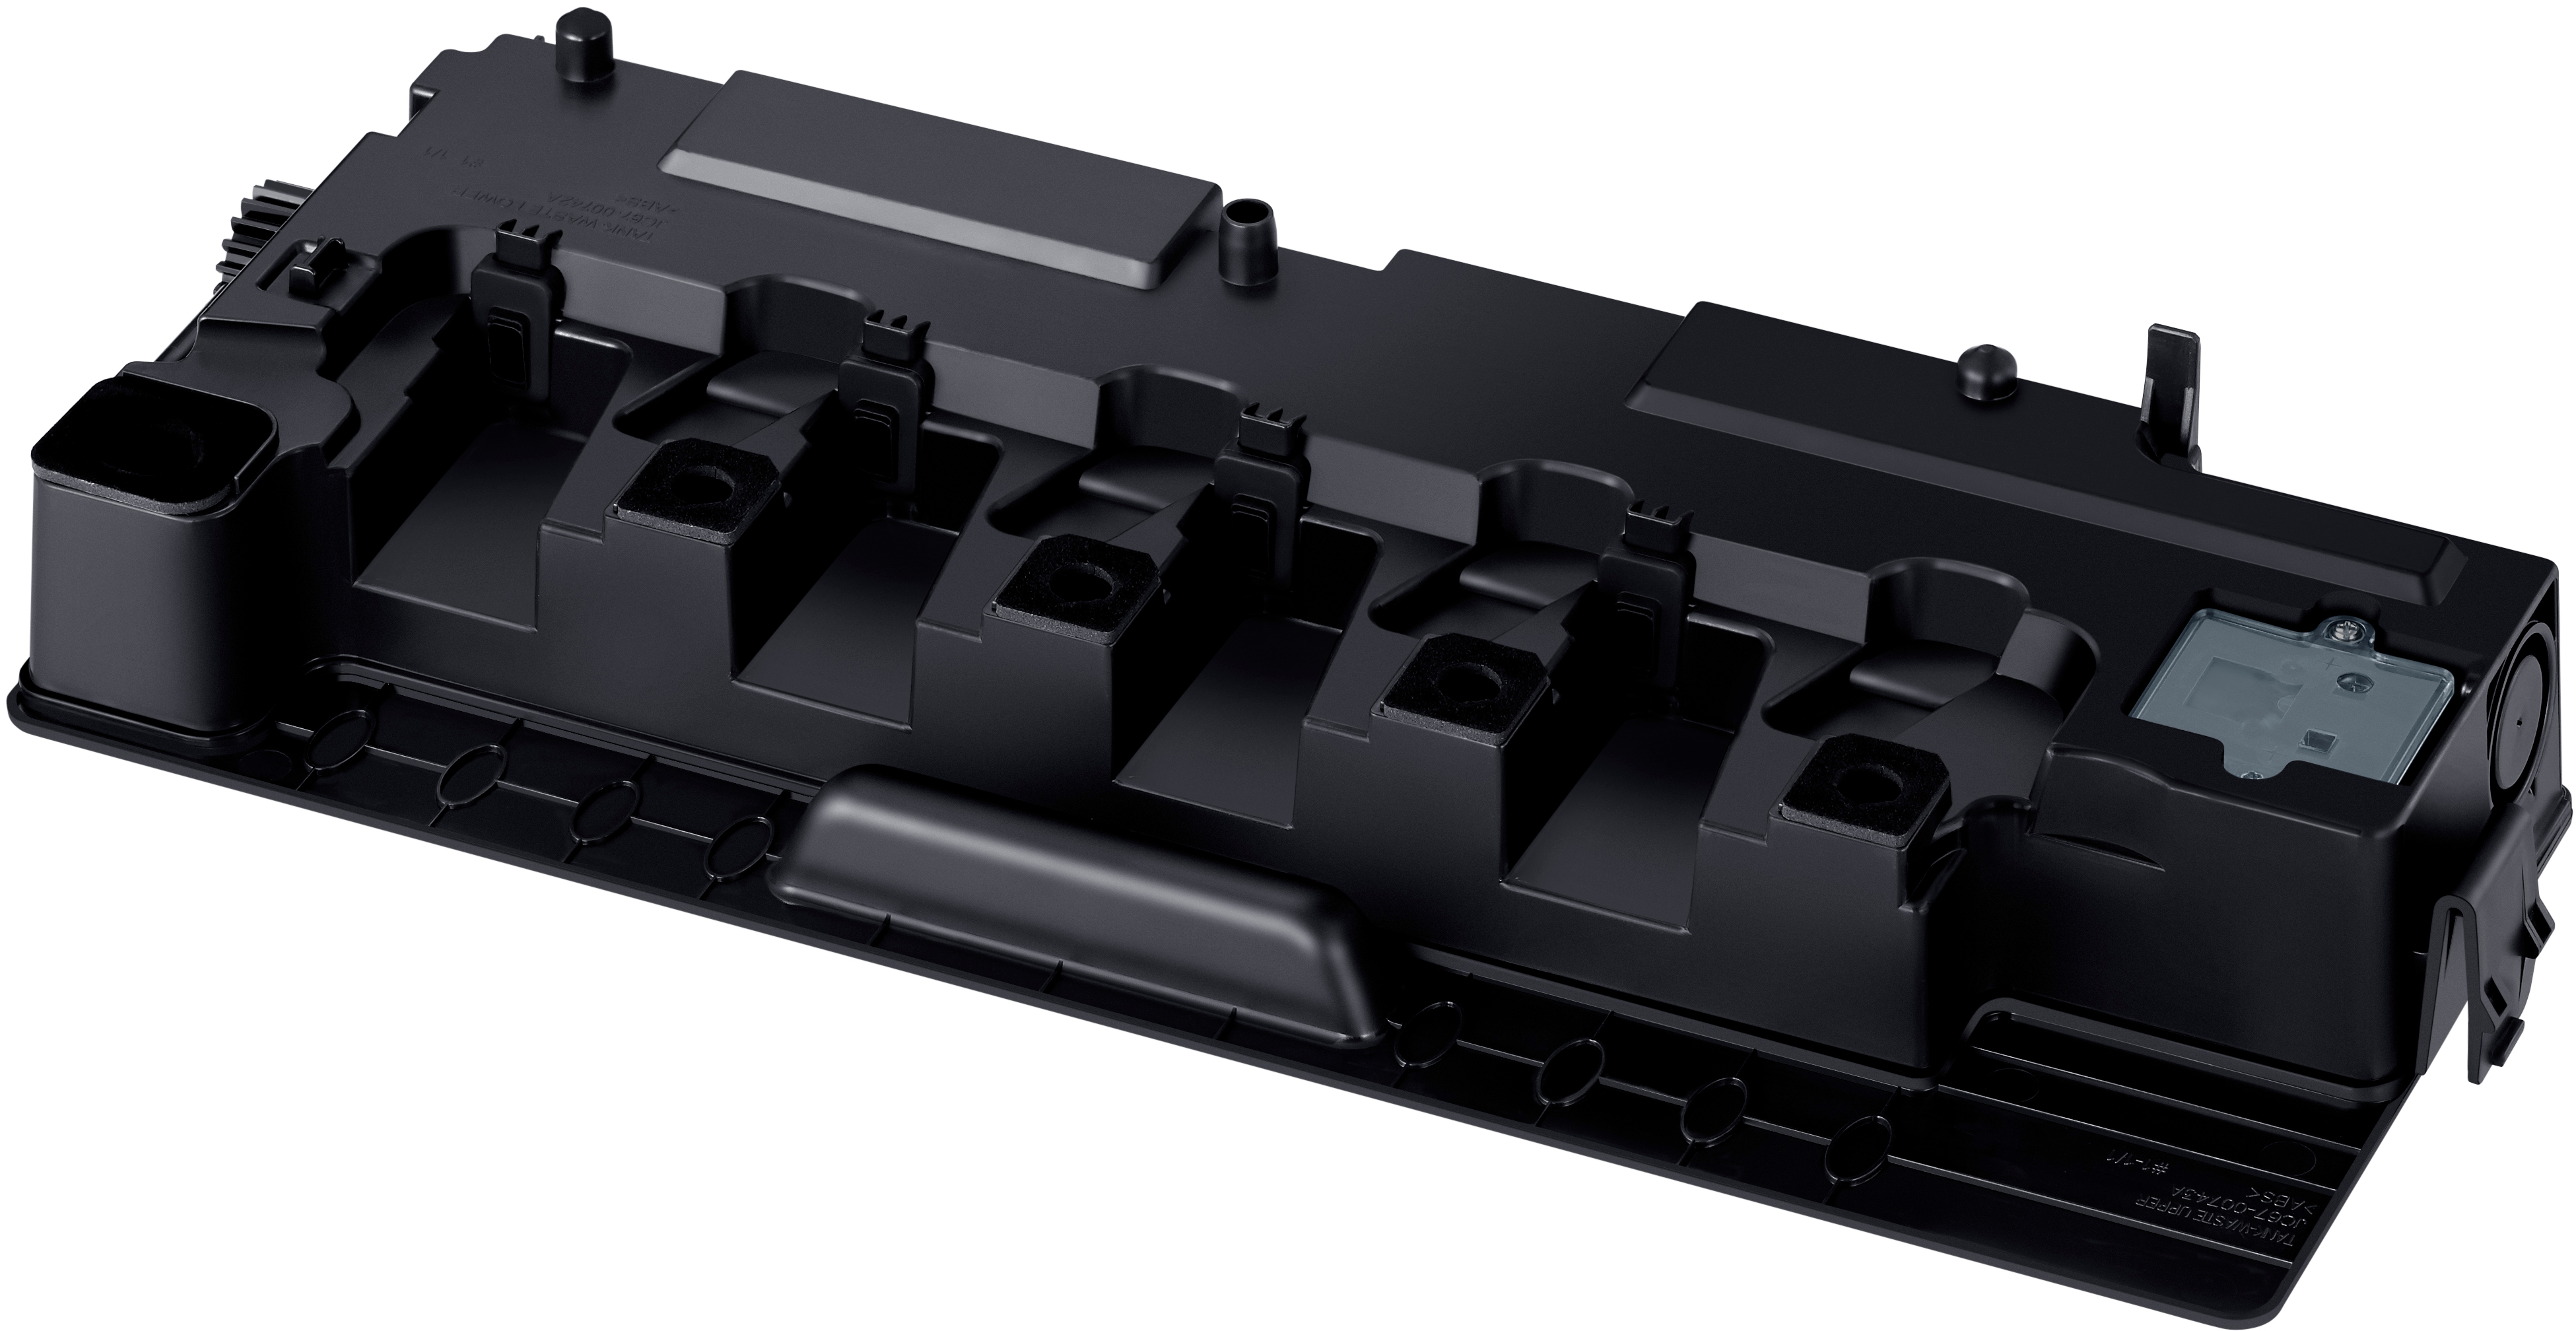 Clt-w808 Toner Collection Unit Ss701a - WC01